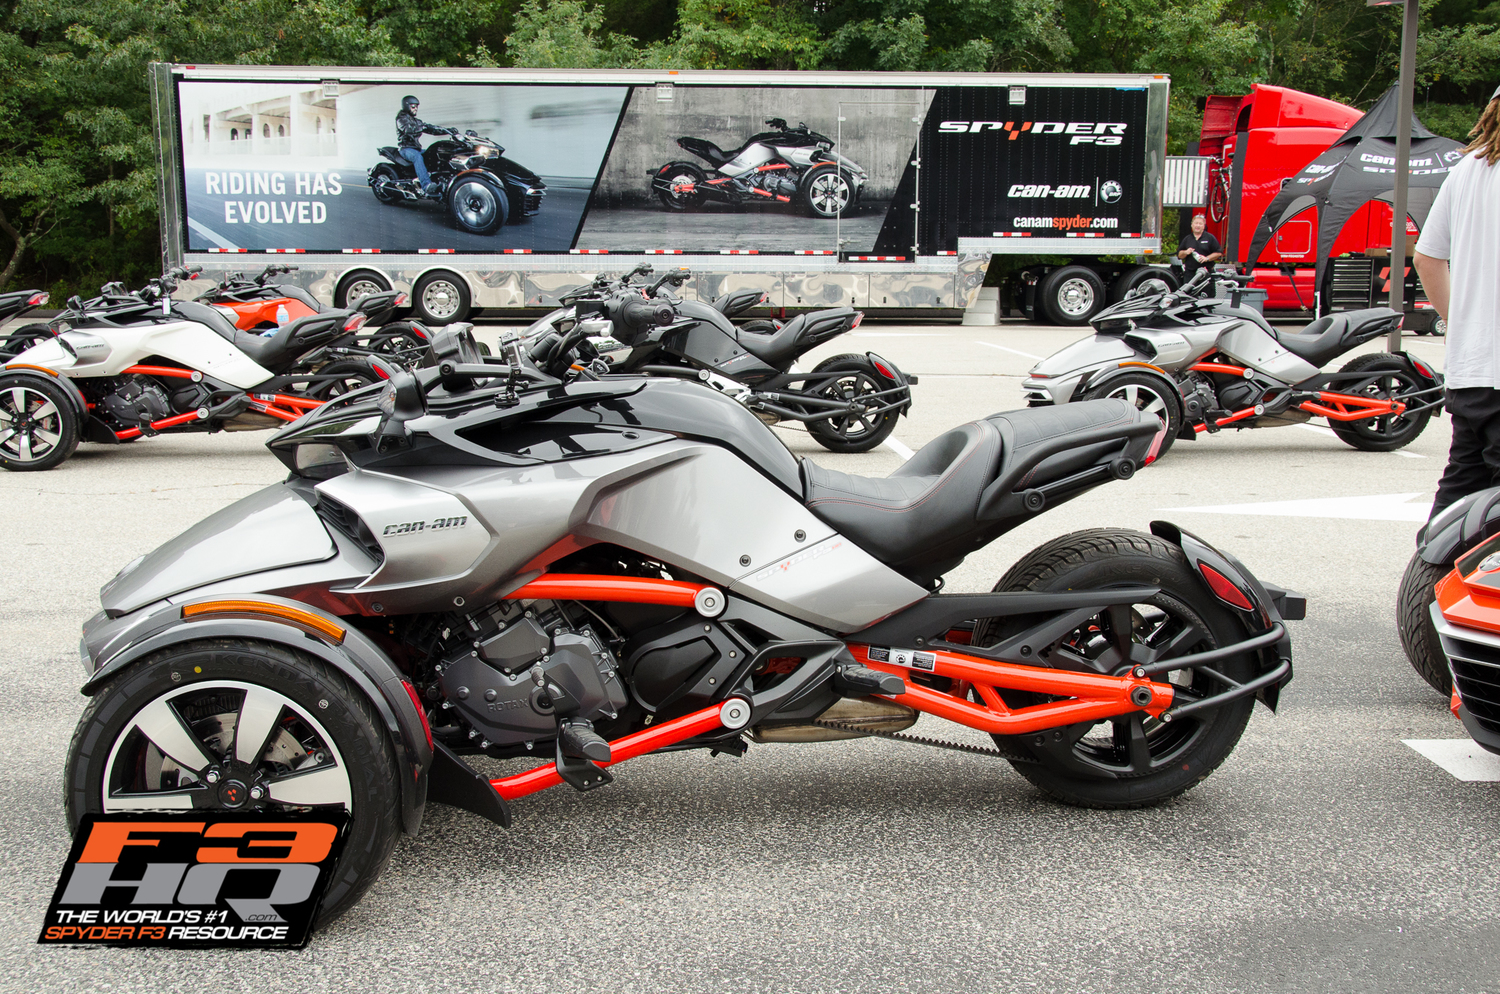 2014 Can-Am Spyder F3 - Product Launch and Ryde-30-21.jpg